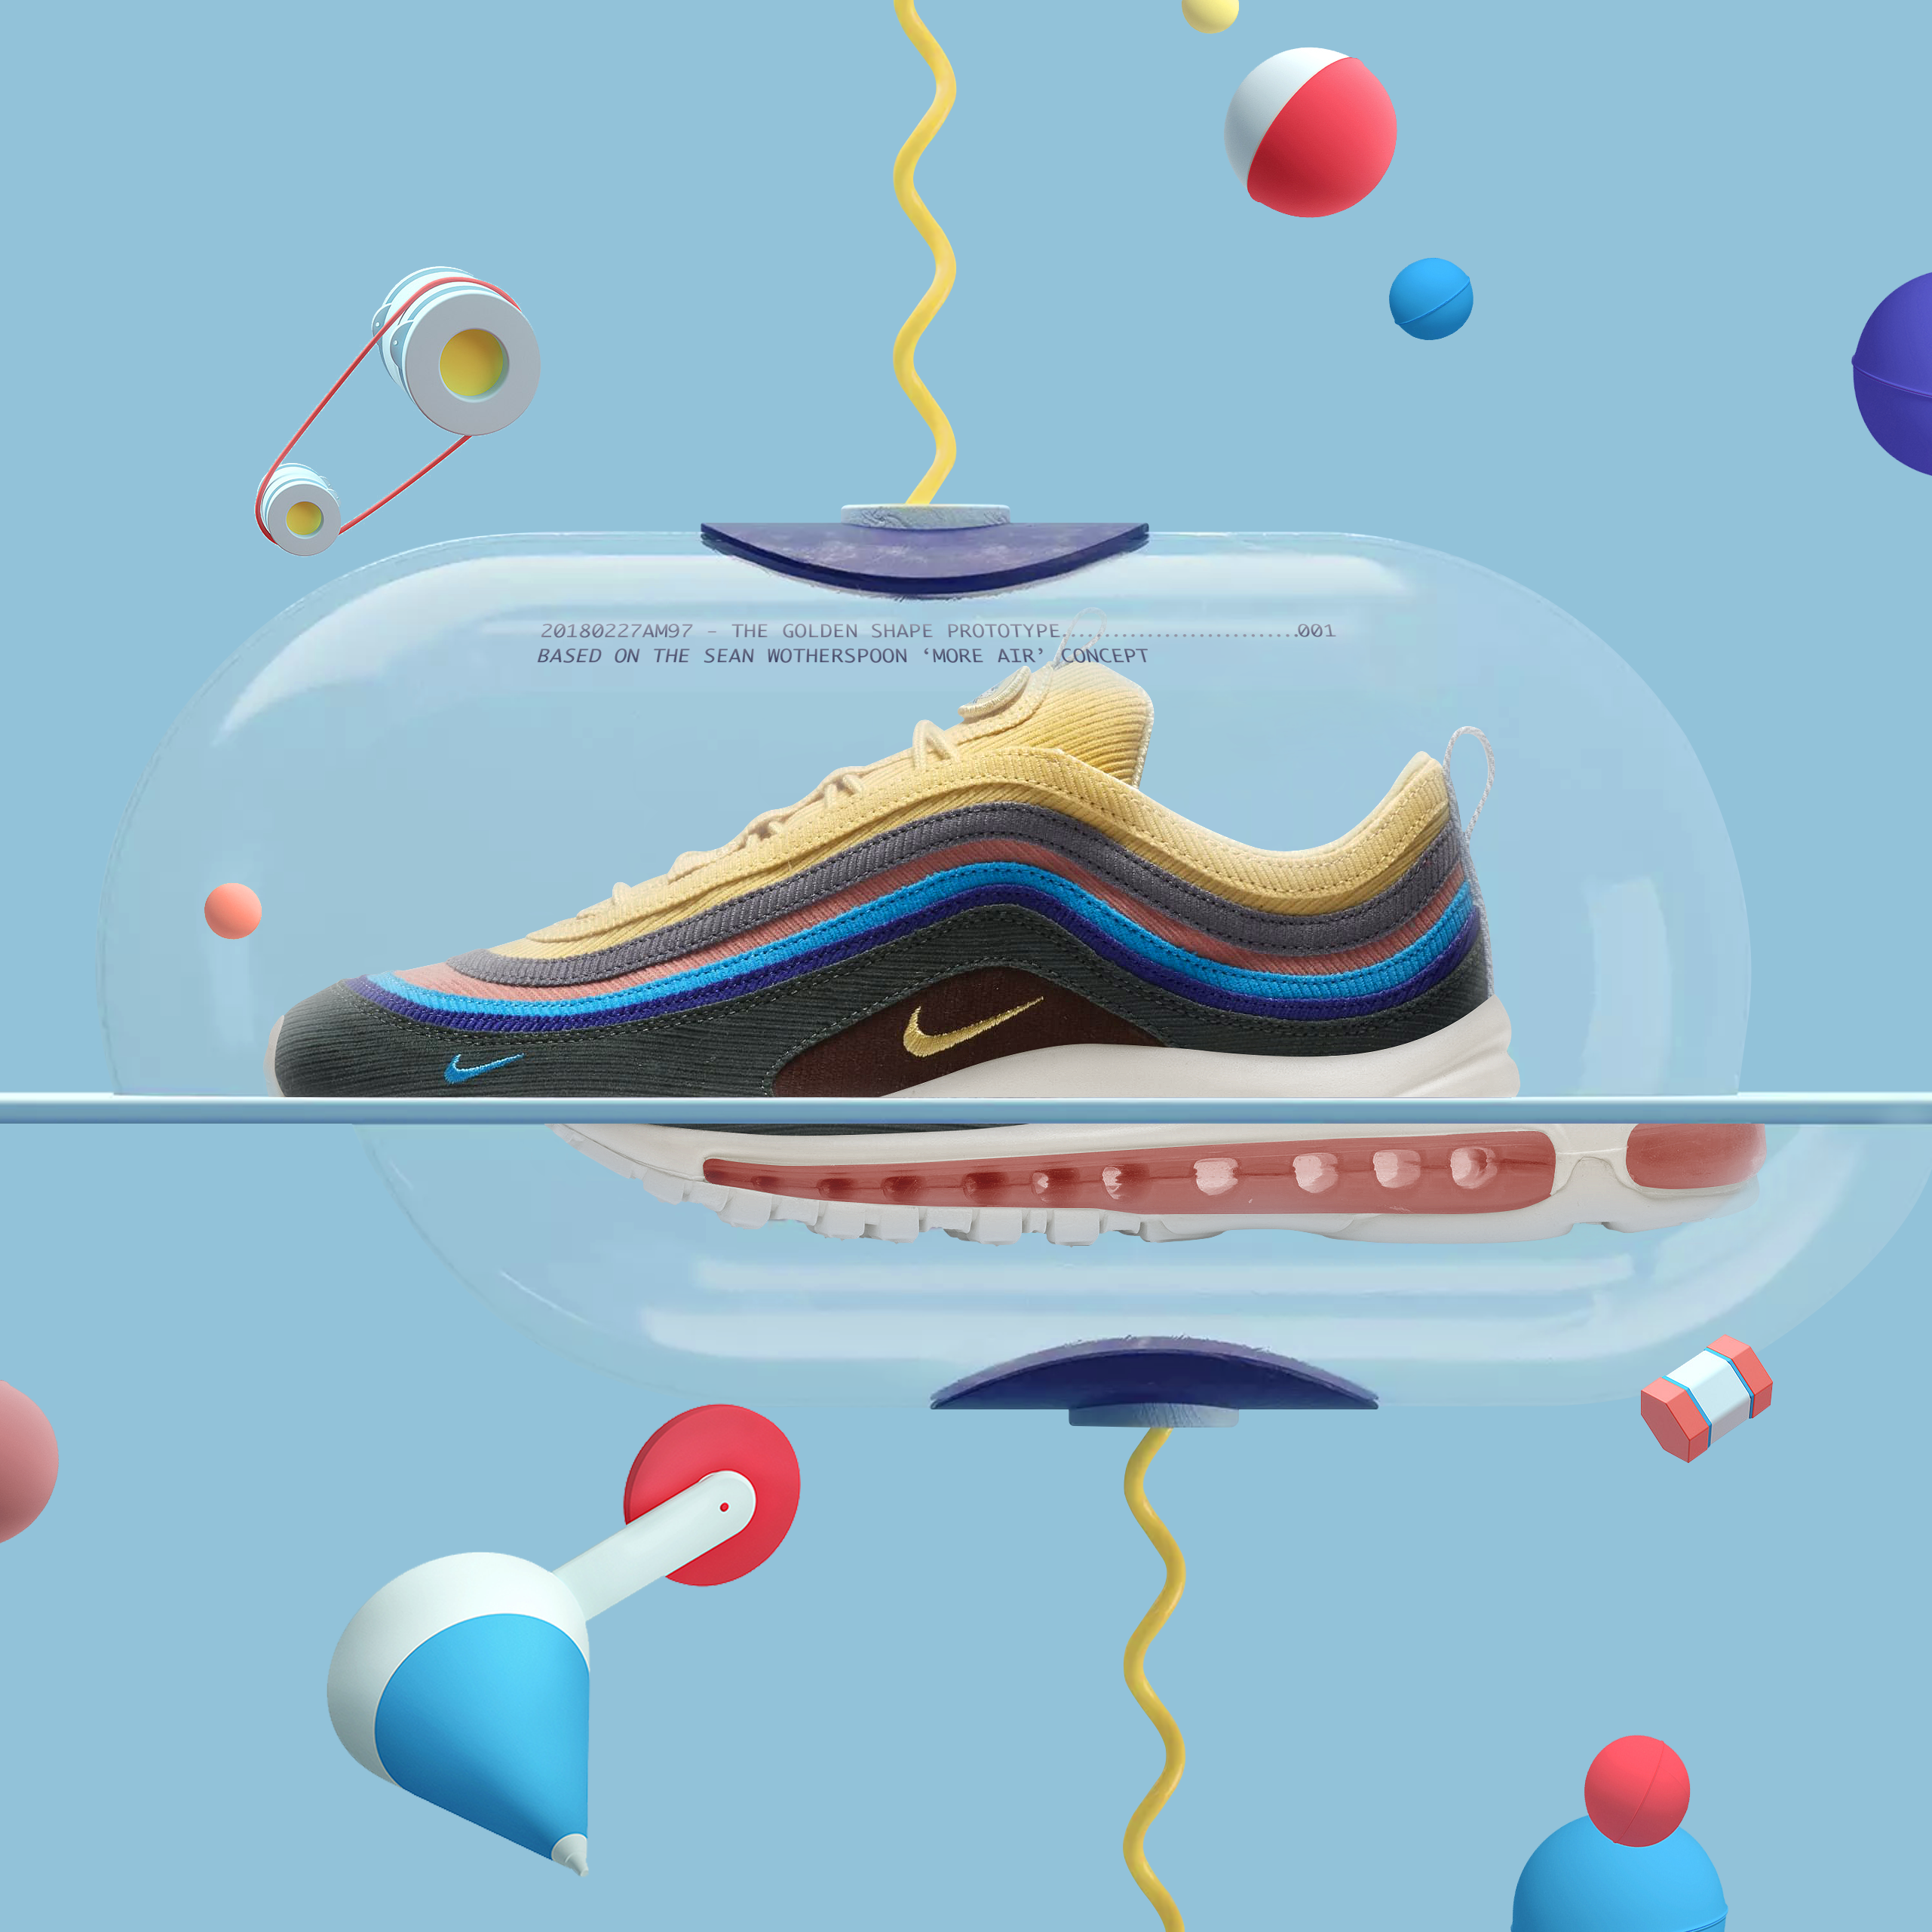 Nike Air Max 97 Sean Wotherspoon Air Max Day 2018 | Design